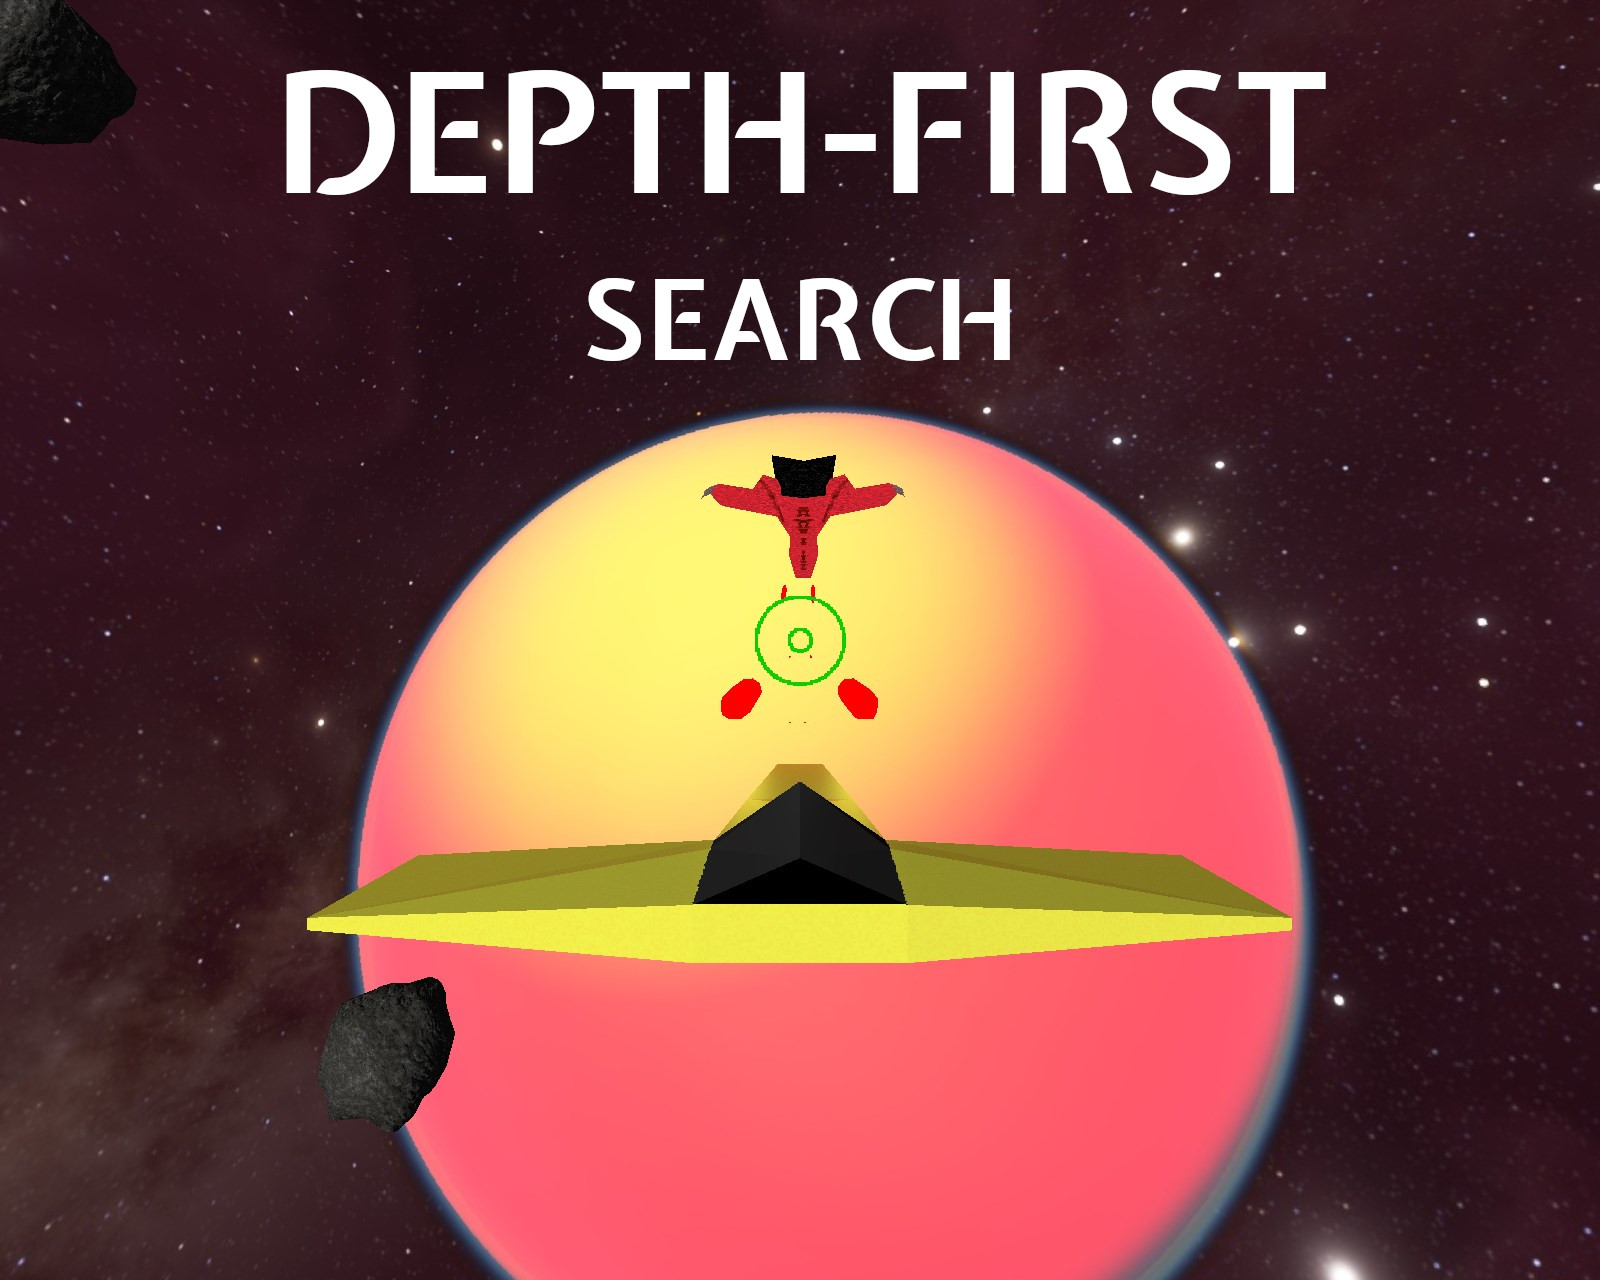 Depth-First Search's title card